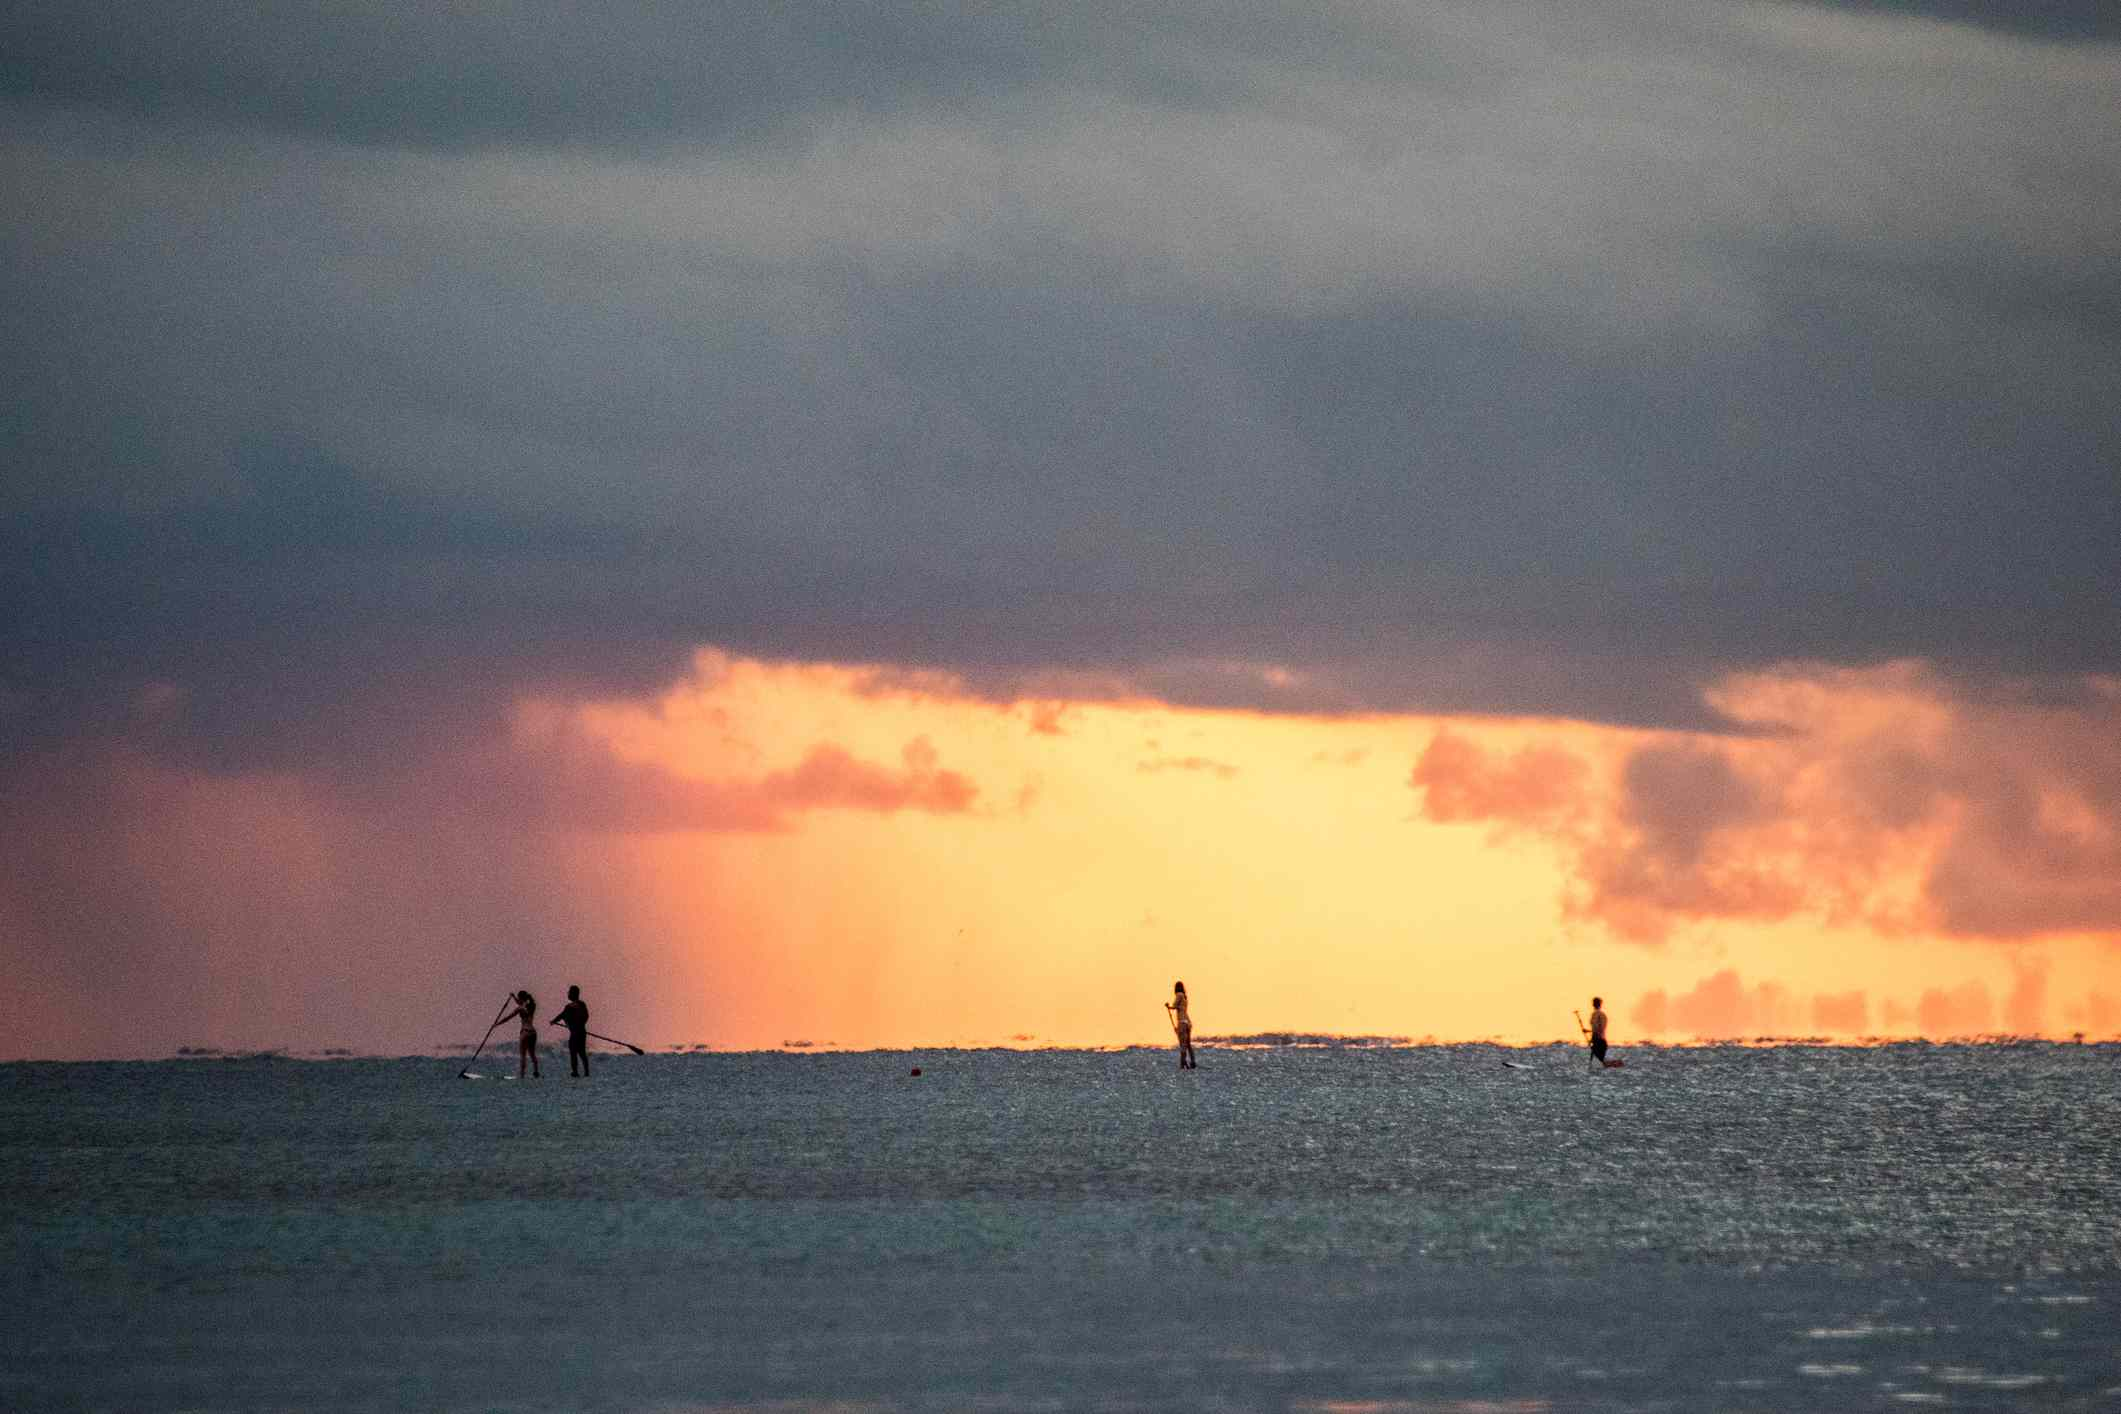 Paddle boarders at sunrise